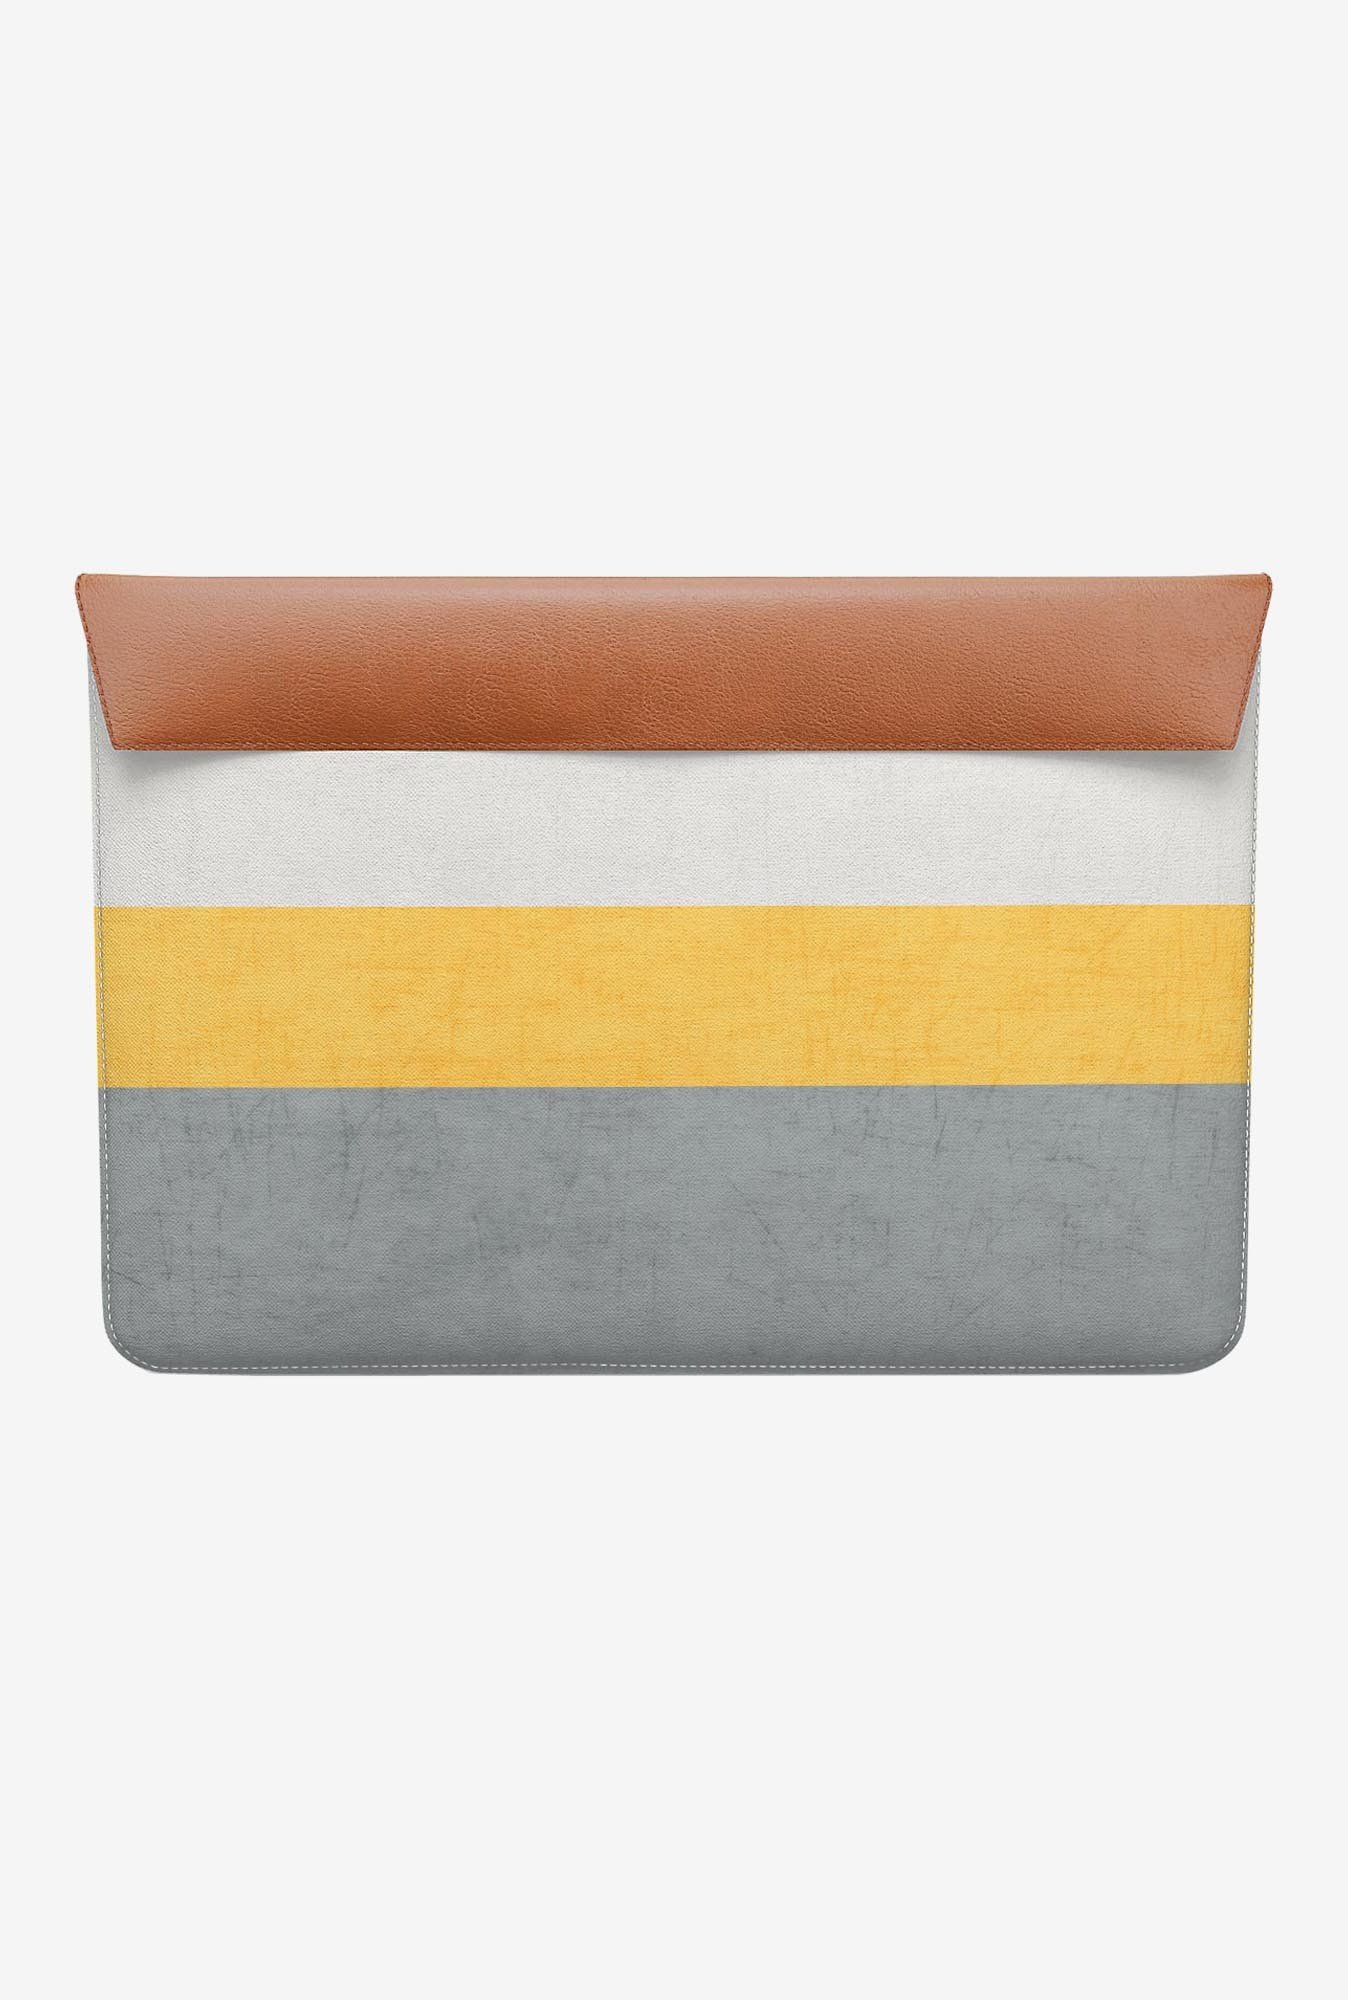 DailyObjects Summer Time MacBook Pro 15 Envelope Sleeve